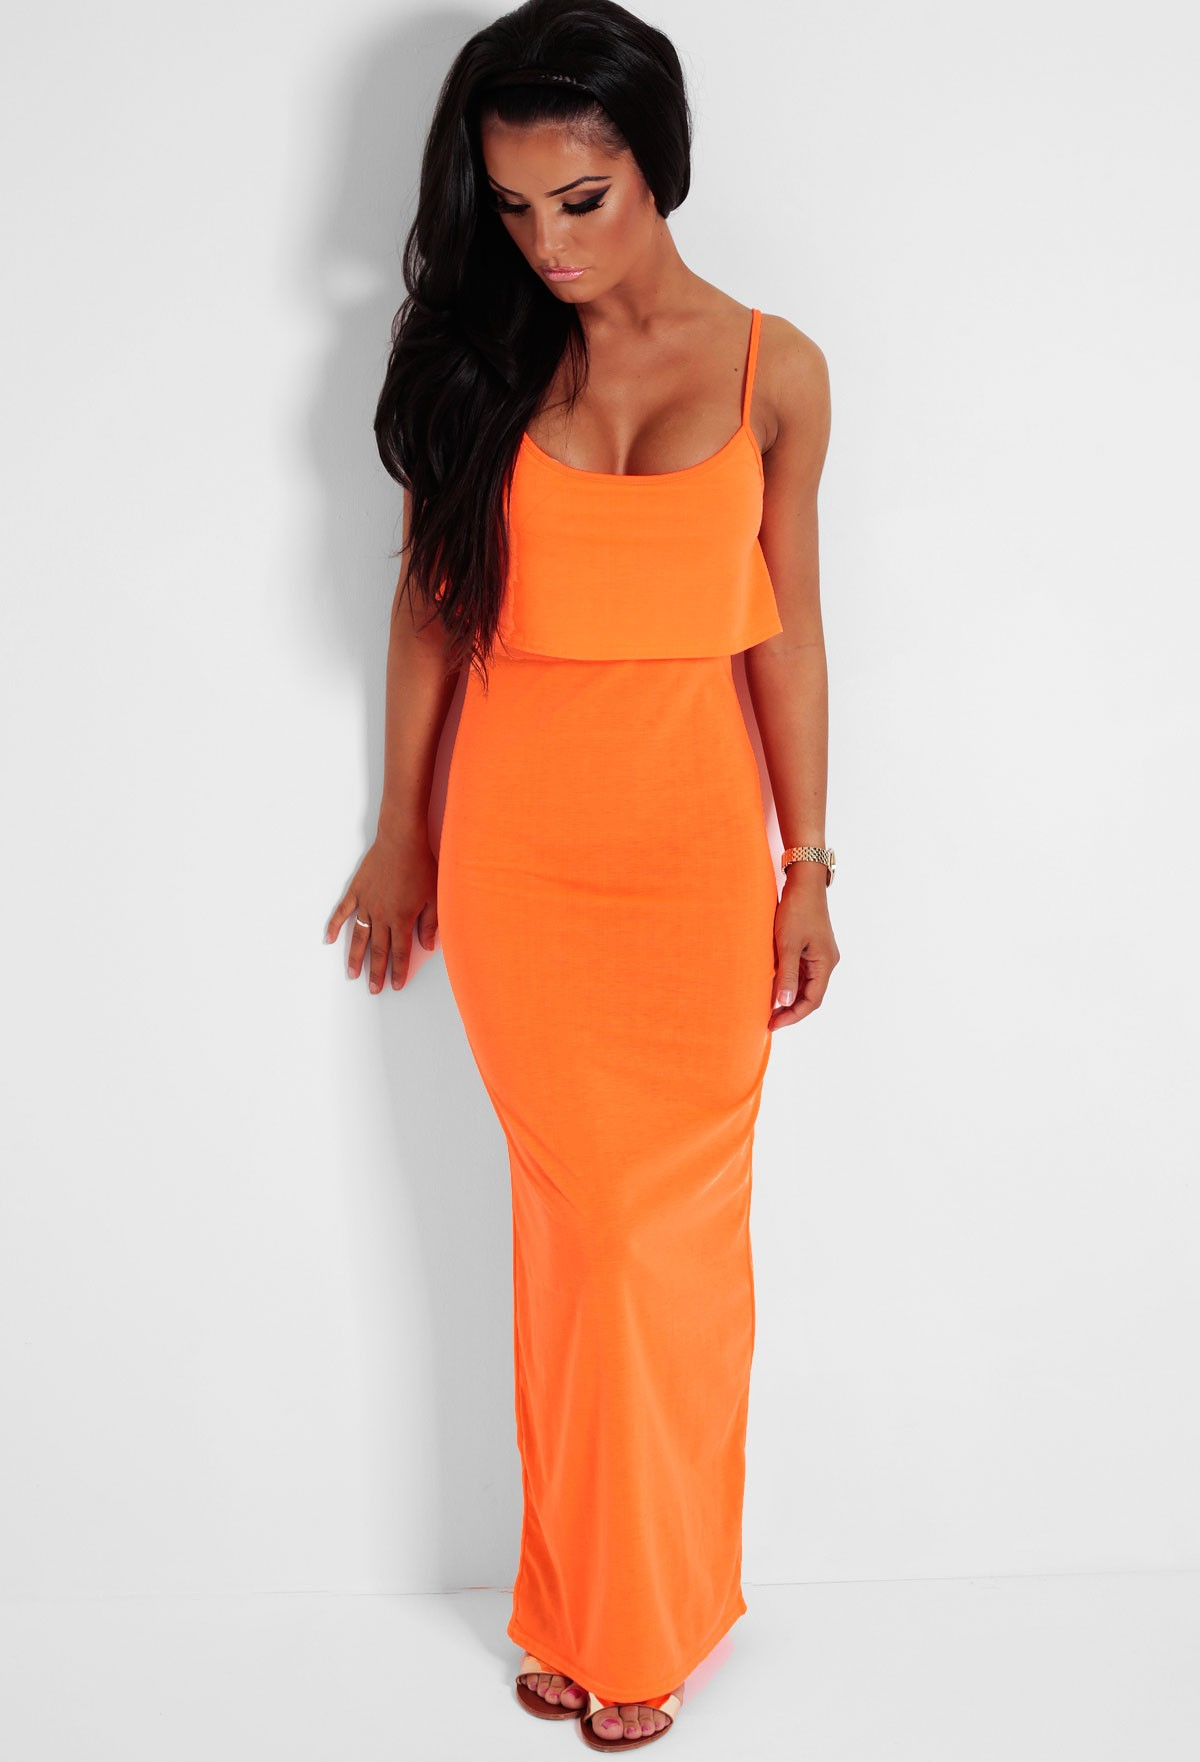 Twist Fluorescent Orange Ruffle Maxi Dress | Pink Boutique